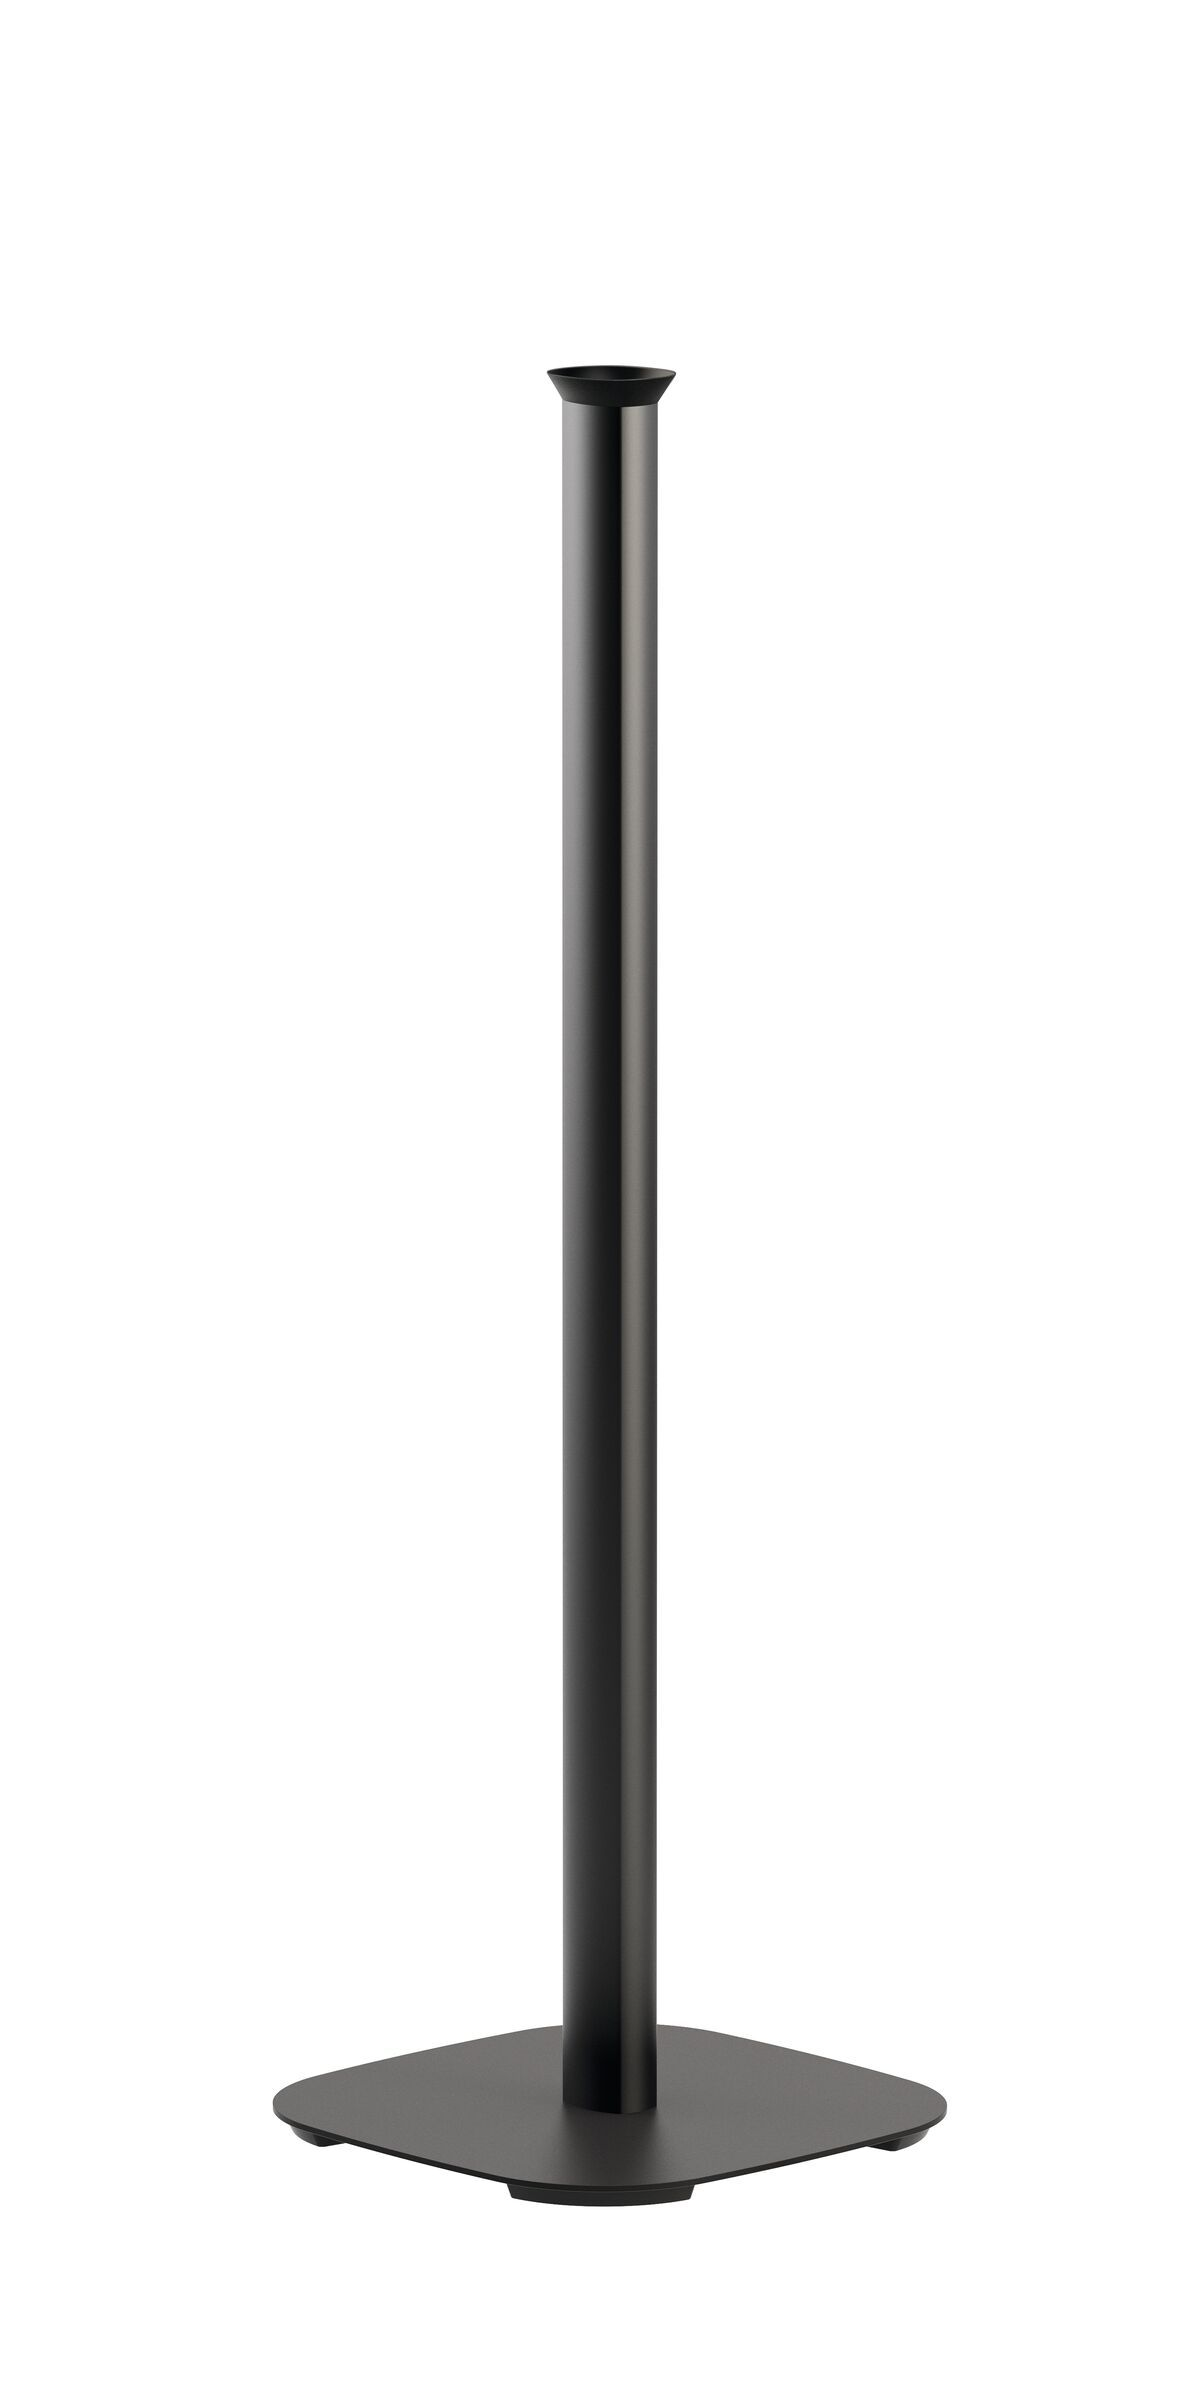 Vogel's SOUND 6301 Stand per casse Bowers & Wilkins Formation Flex - Product